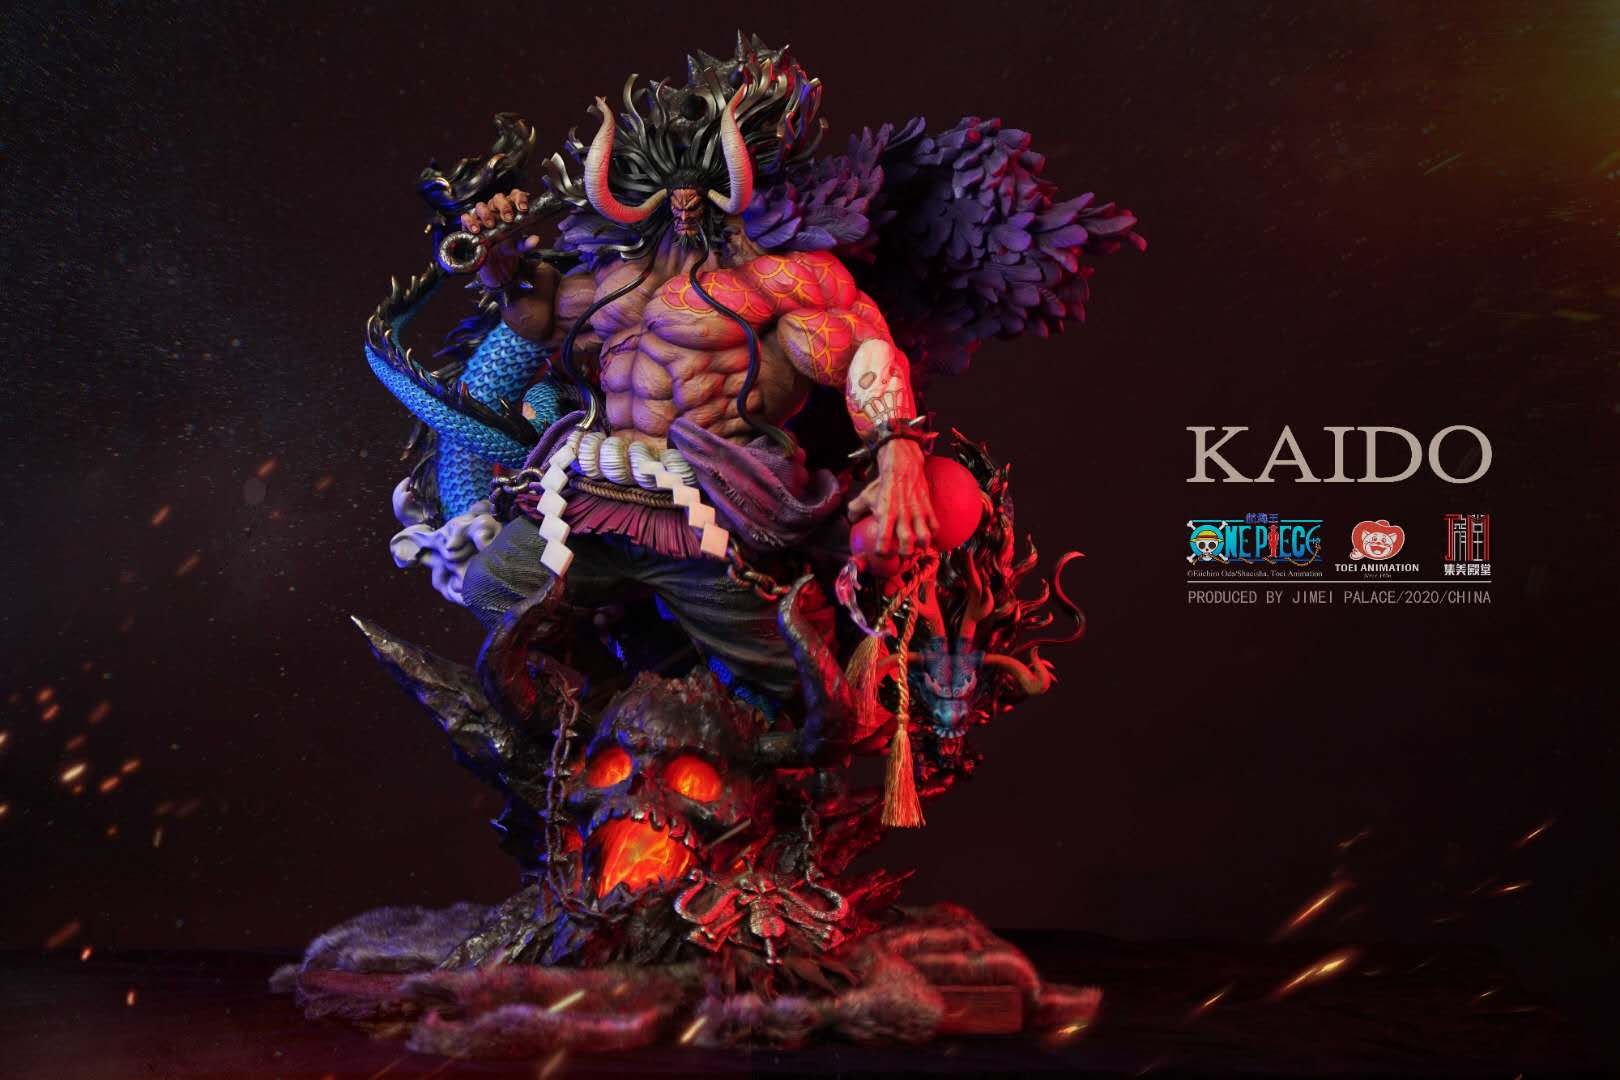 Kaido One Piece Villain Gargantuan Figure by Jimei Palace Unveiled for Preorder